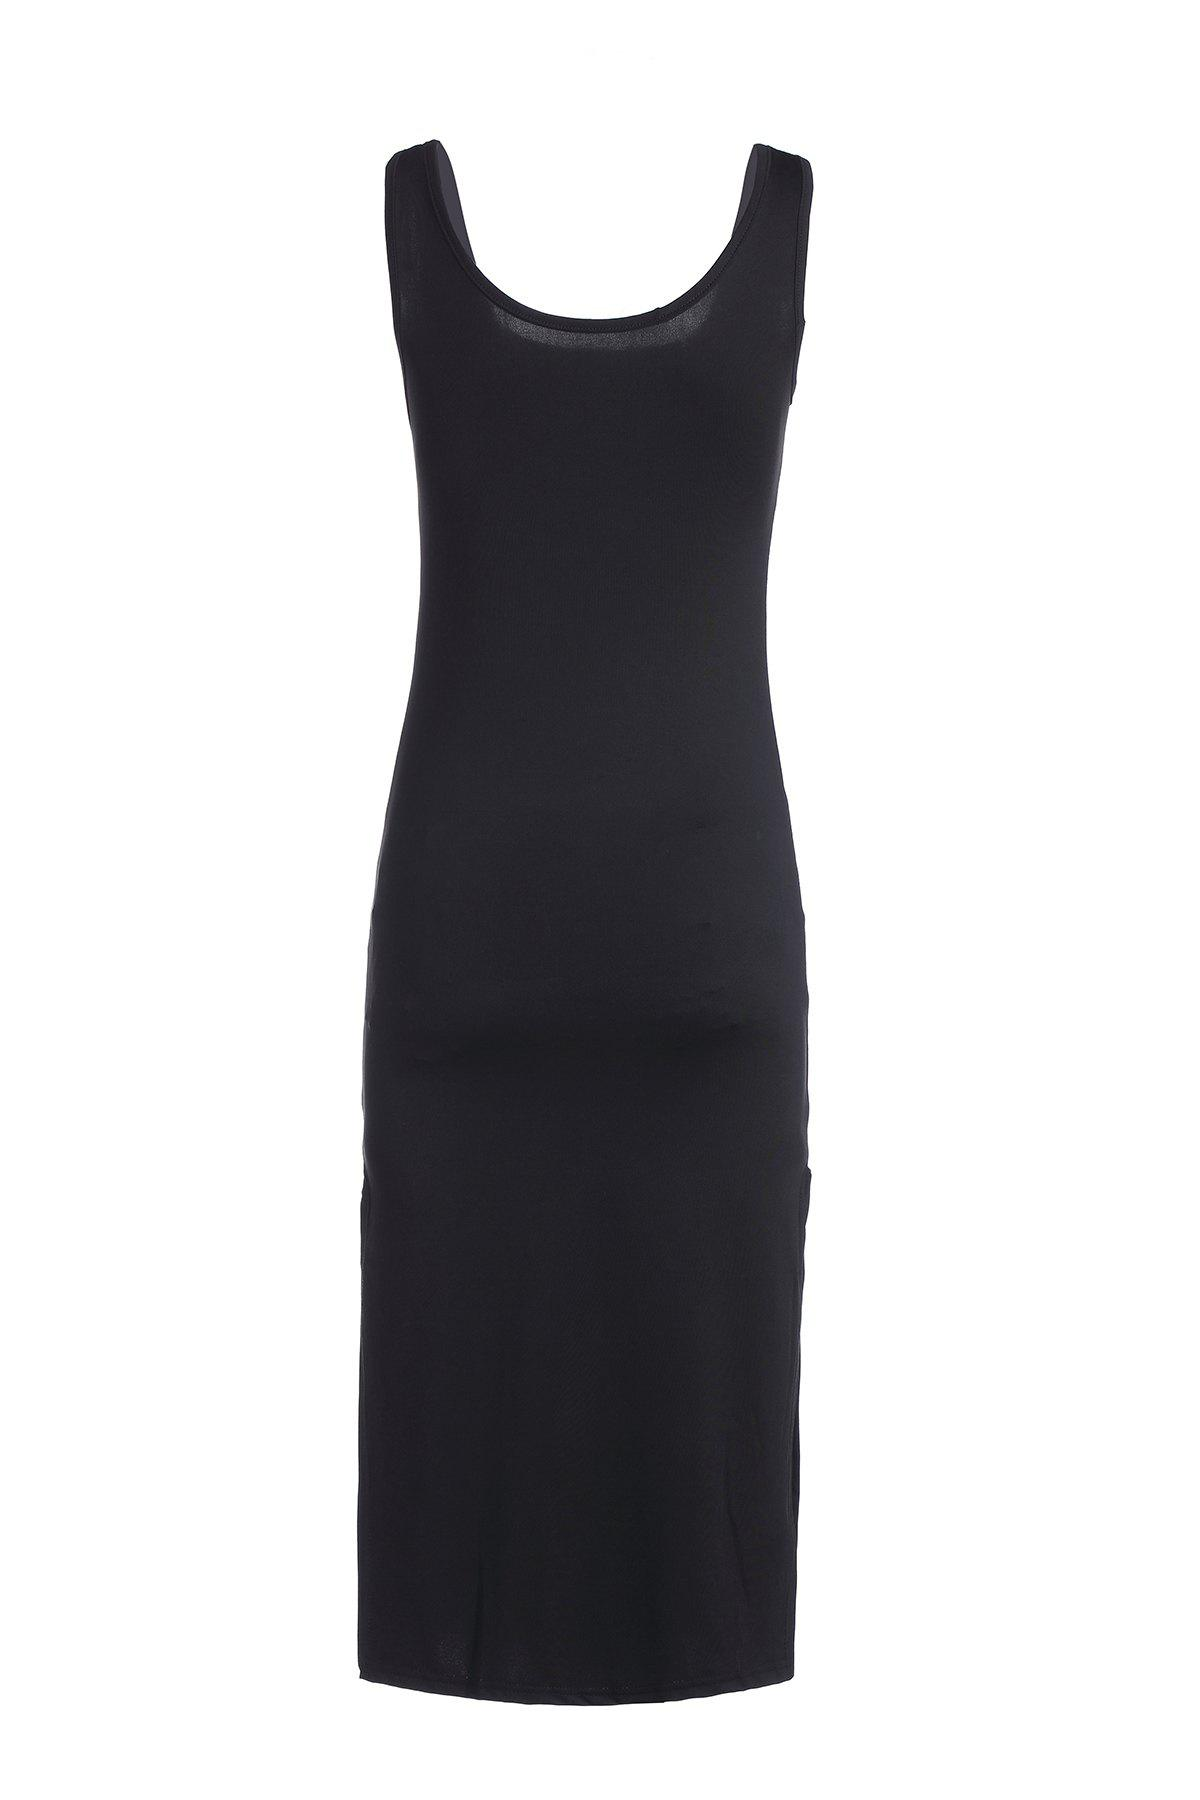 Sleeveless Brief Scoop Neck Slimming Solid Color Dress For Women - BLACK ONE SIZE